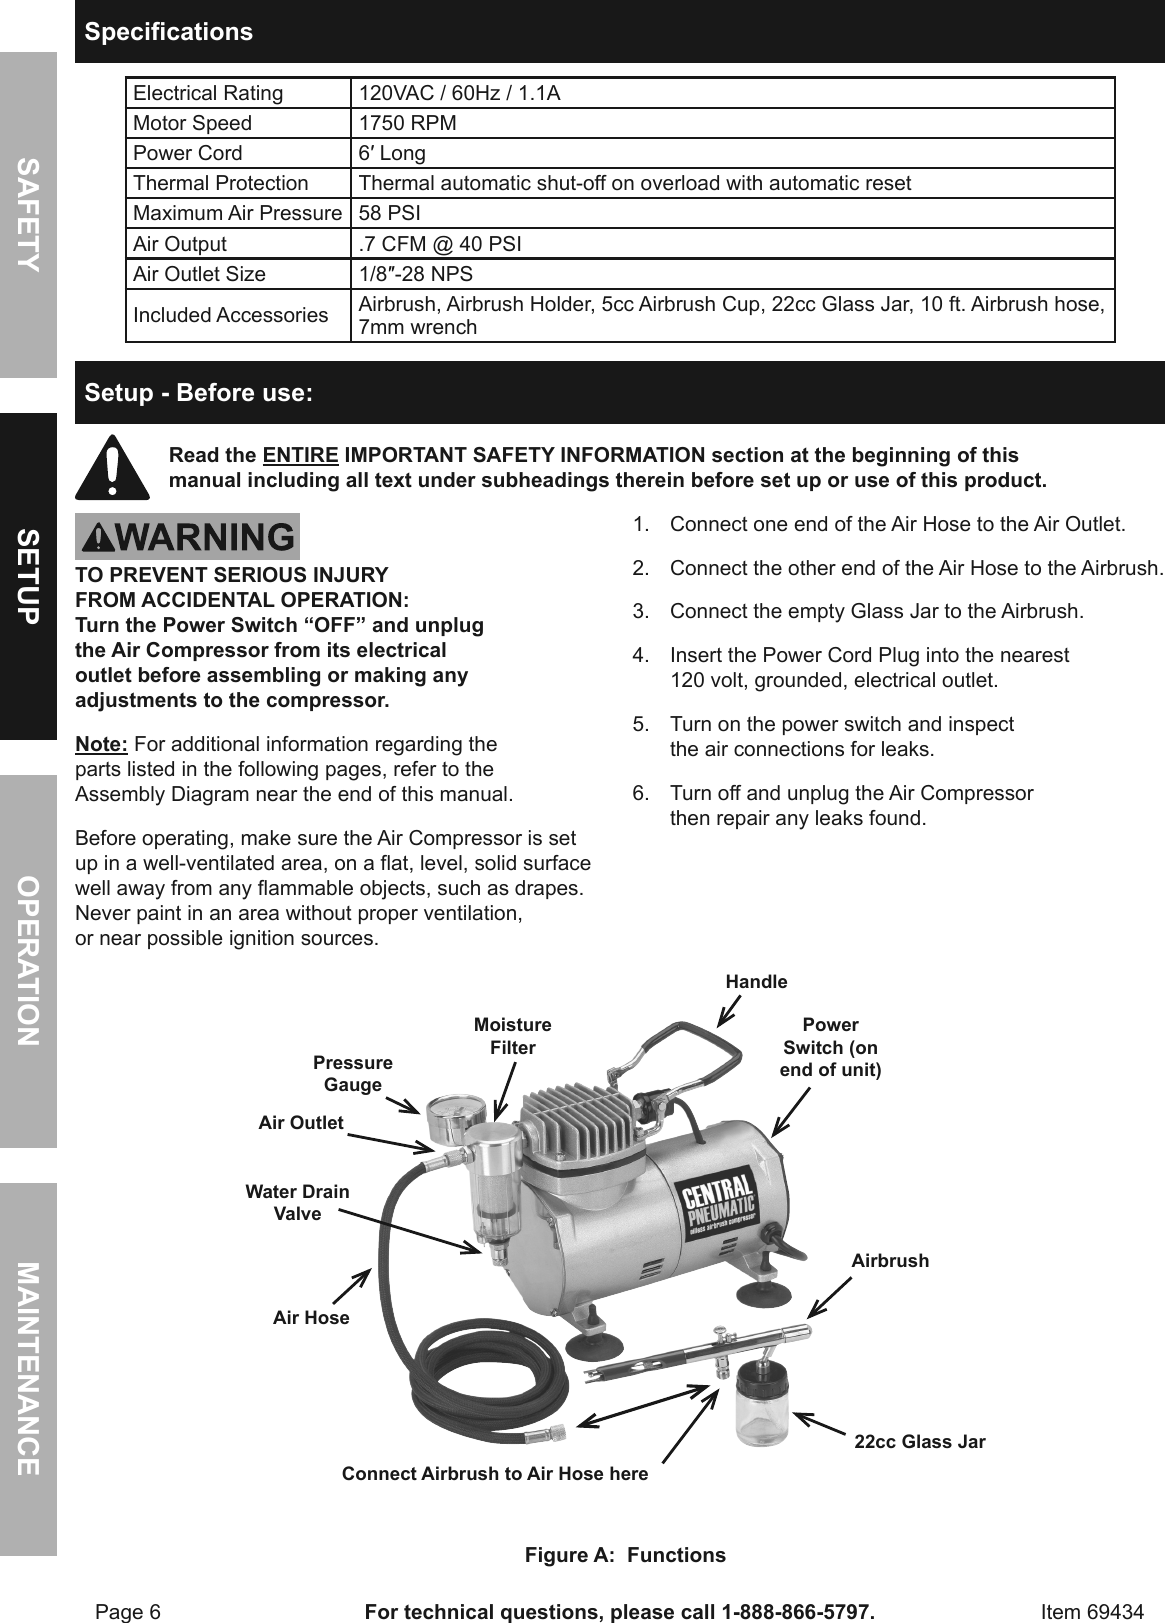 page 6 of 12 - manual for the 69434 1/5 horsepower, 58 psi